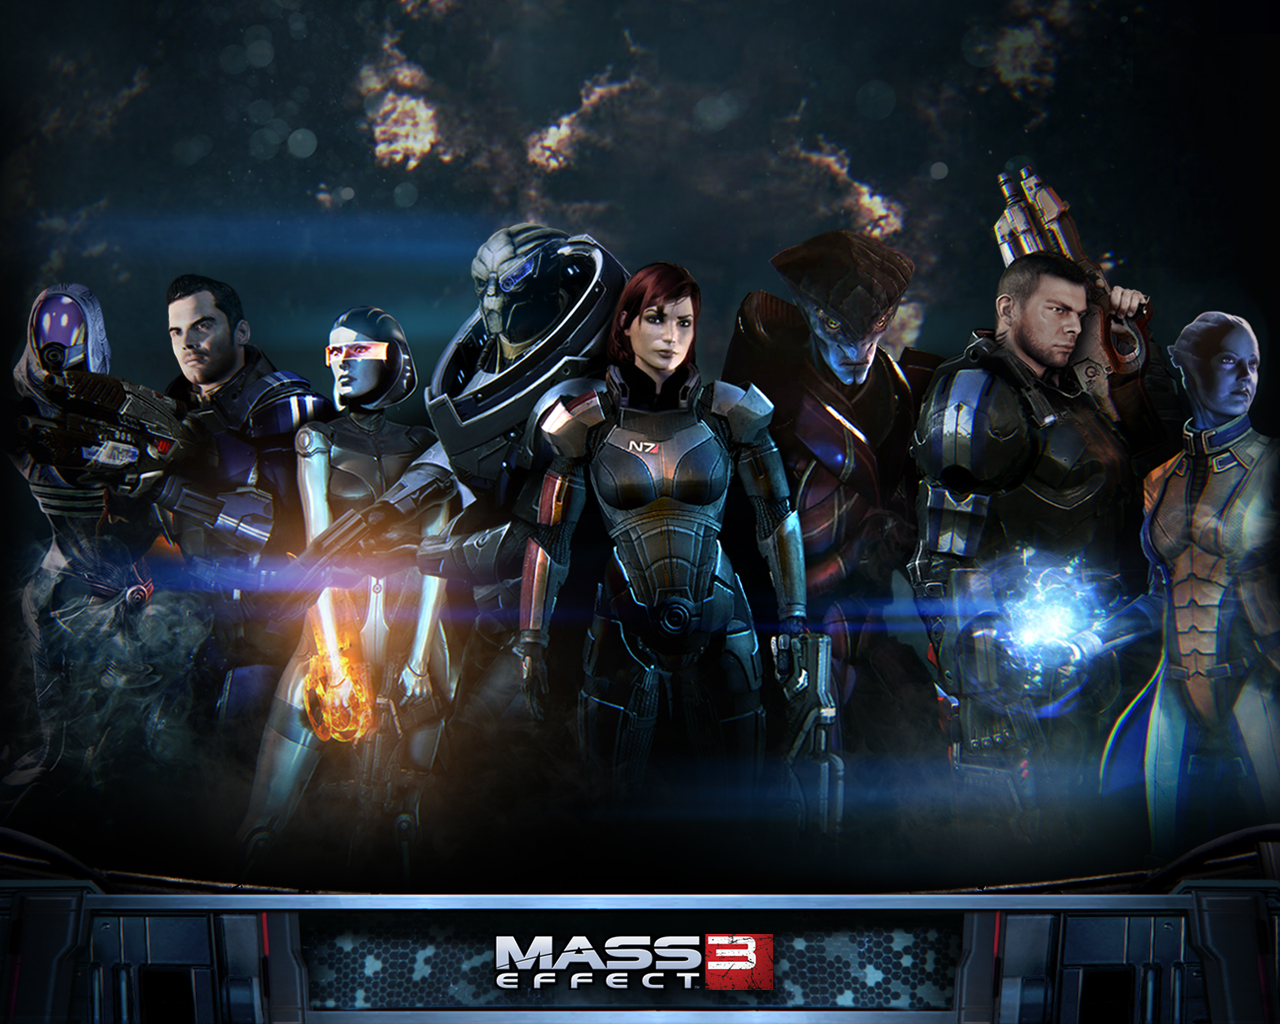 Mass Effect 3 FemShep